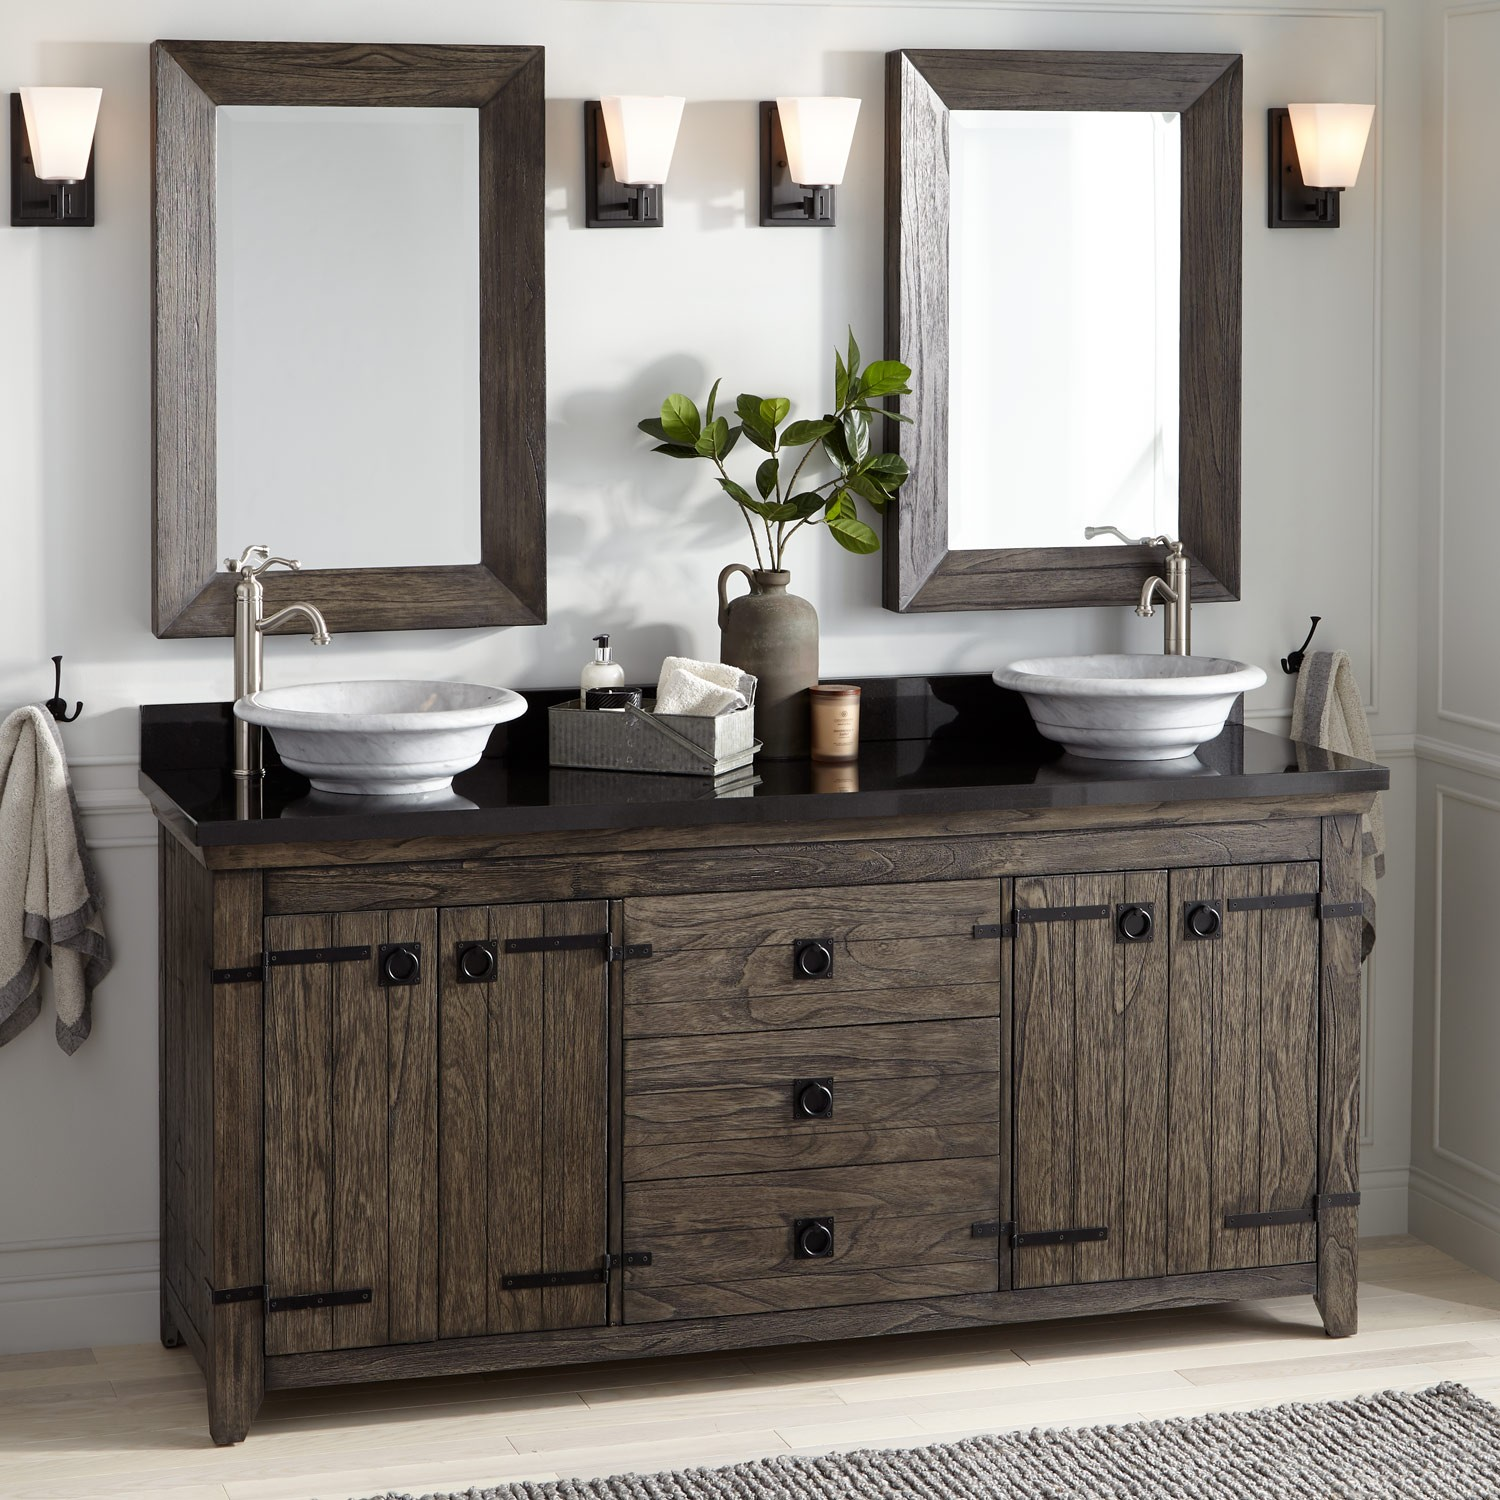 Image of: 72 Inch Rustic Double Vanity